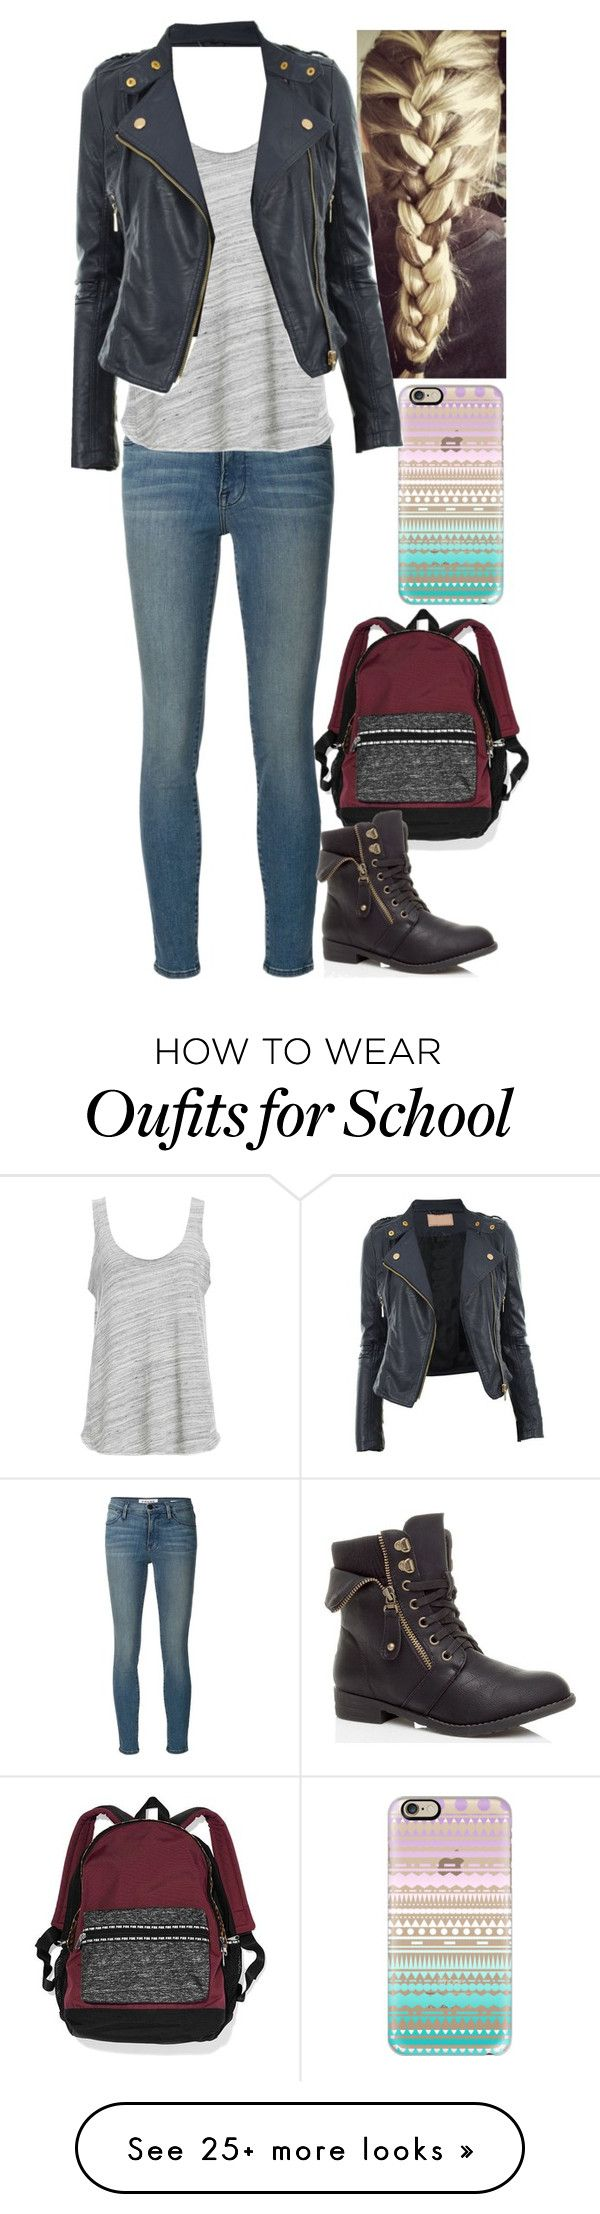 """Untitled #386"" by stepupdancer on Polyvore featuring Victoria's Secret, Casetify, Frame Denim and Project Social T"